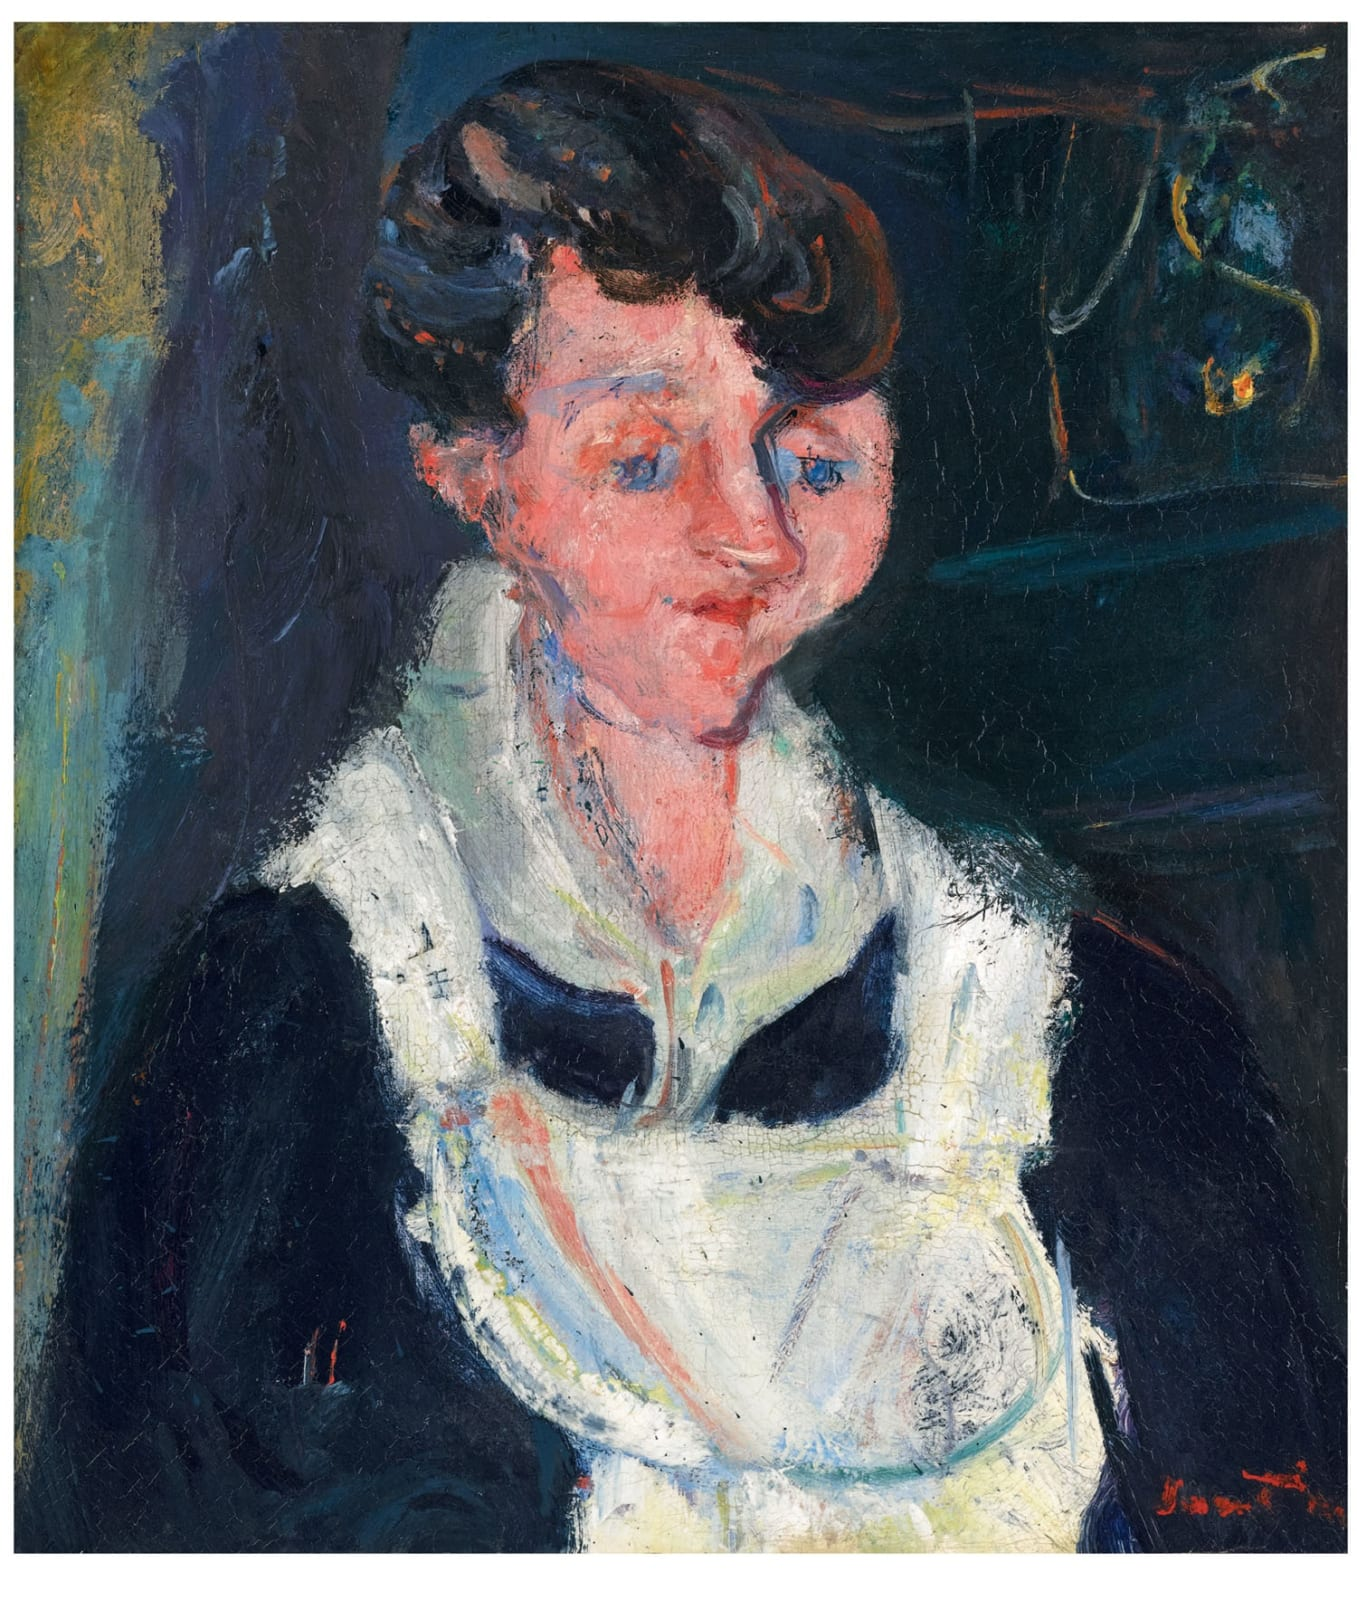 Chaïm Soutine (1893-1943) Jeune Servante (Waiting Maid, also known as La Soubrette) c.1933 Oil on canvas 46.5 x 40.5 cm Ben Uri Collection To see and discover more about this artist click here